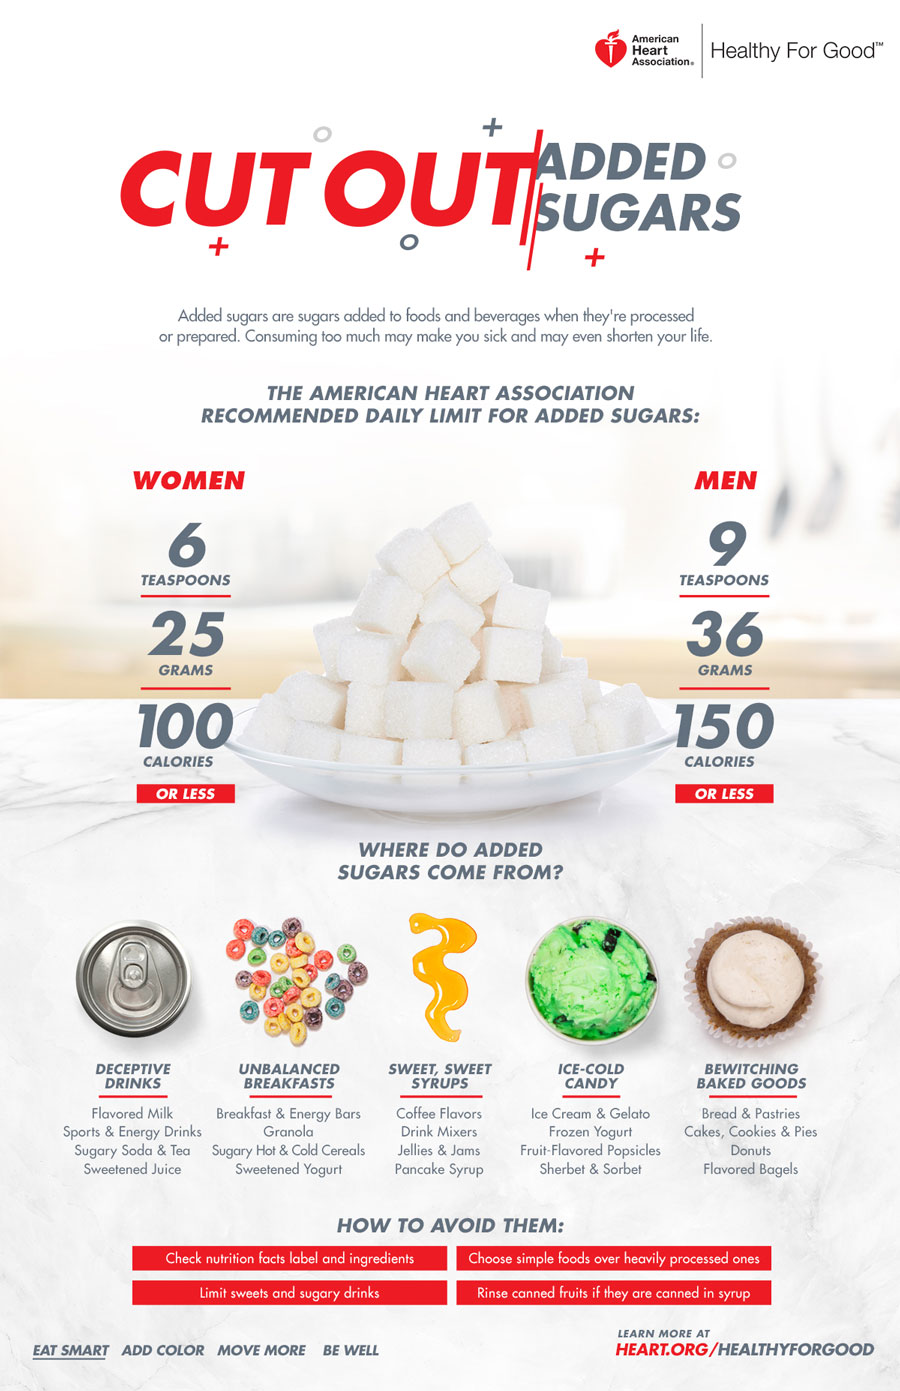 American Heart Association Cut Out Added Sugars Infographic